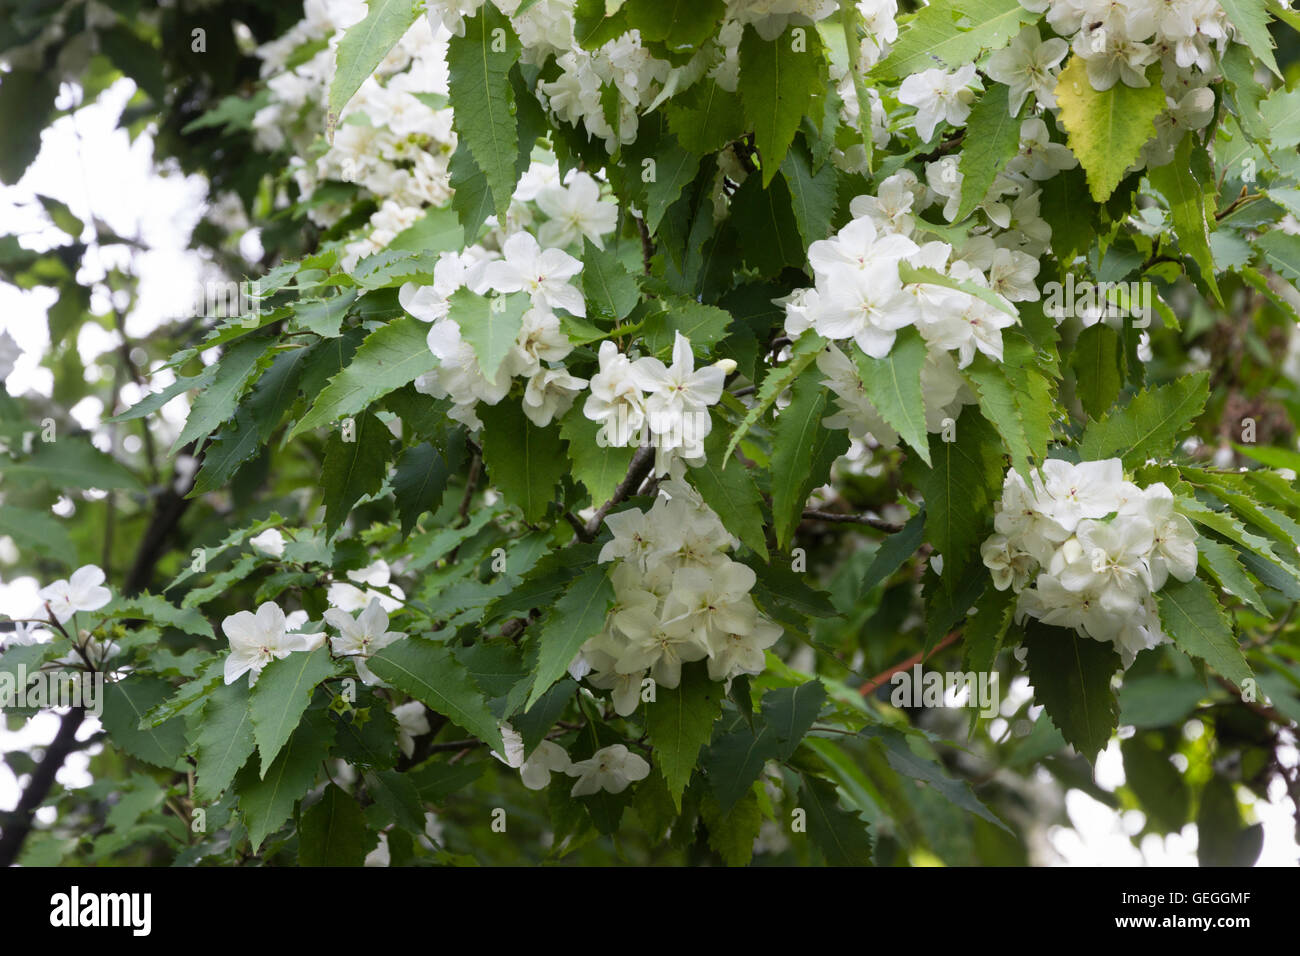 White July flowers of the New Zealand ribbon bark, Hoheria 'Ace of Spades' - Stock Image